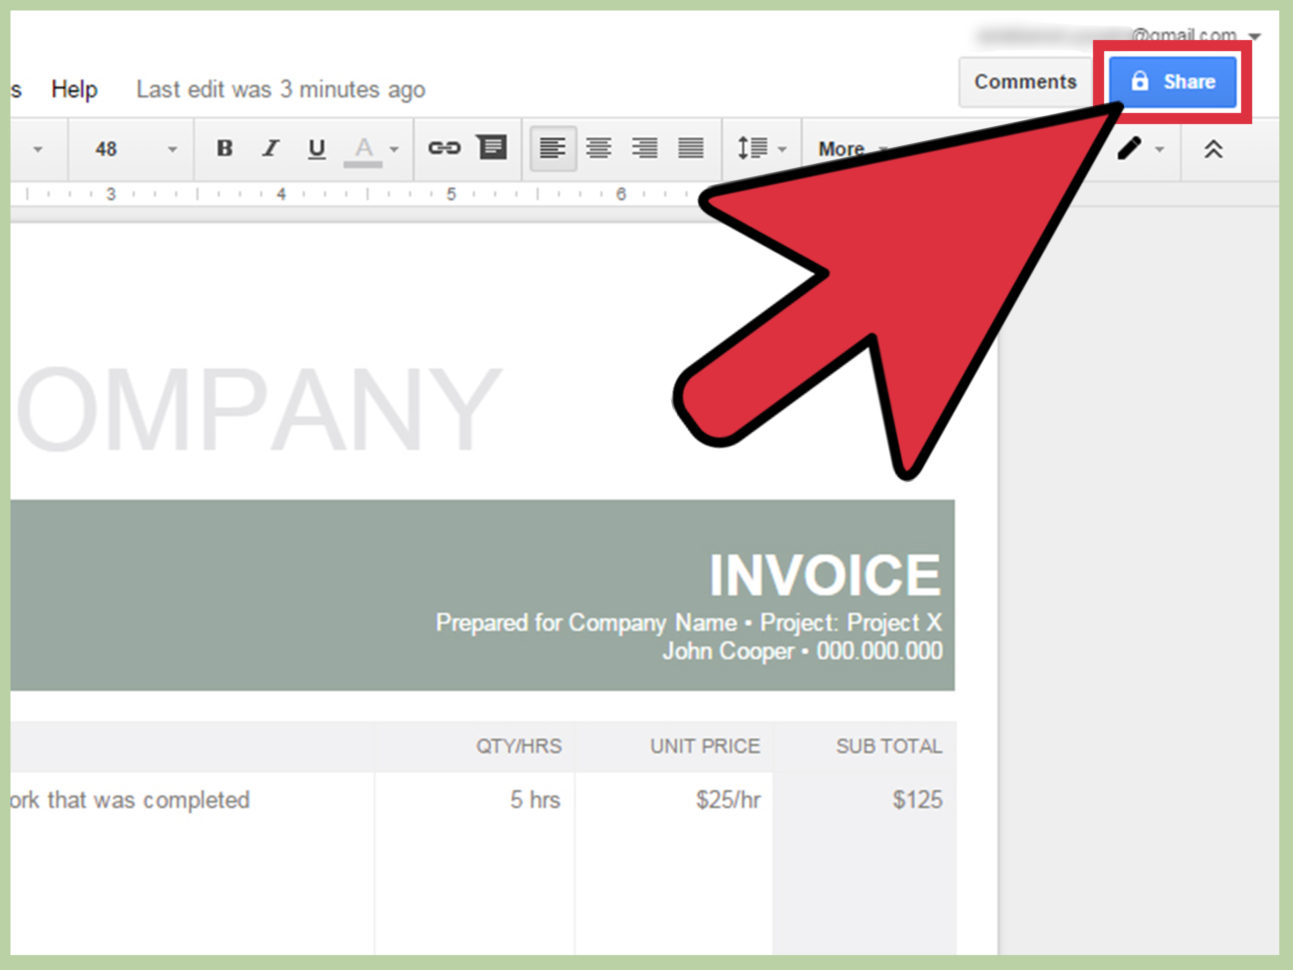 Generate Invoice From Google Spreadsheet With Regard To How To Make An Invoice In Google Docs: 8 Steps With Pictures